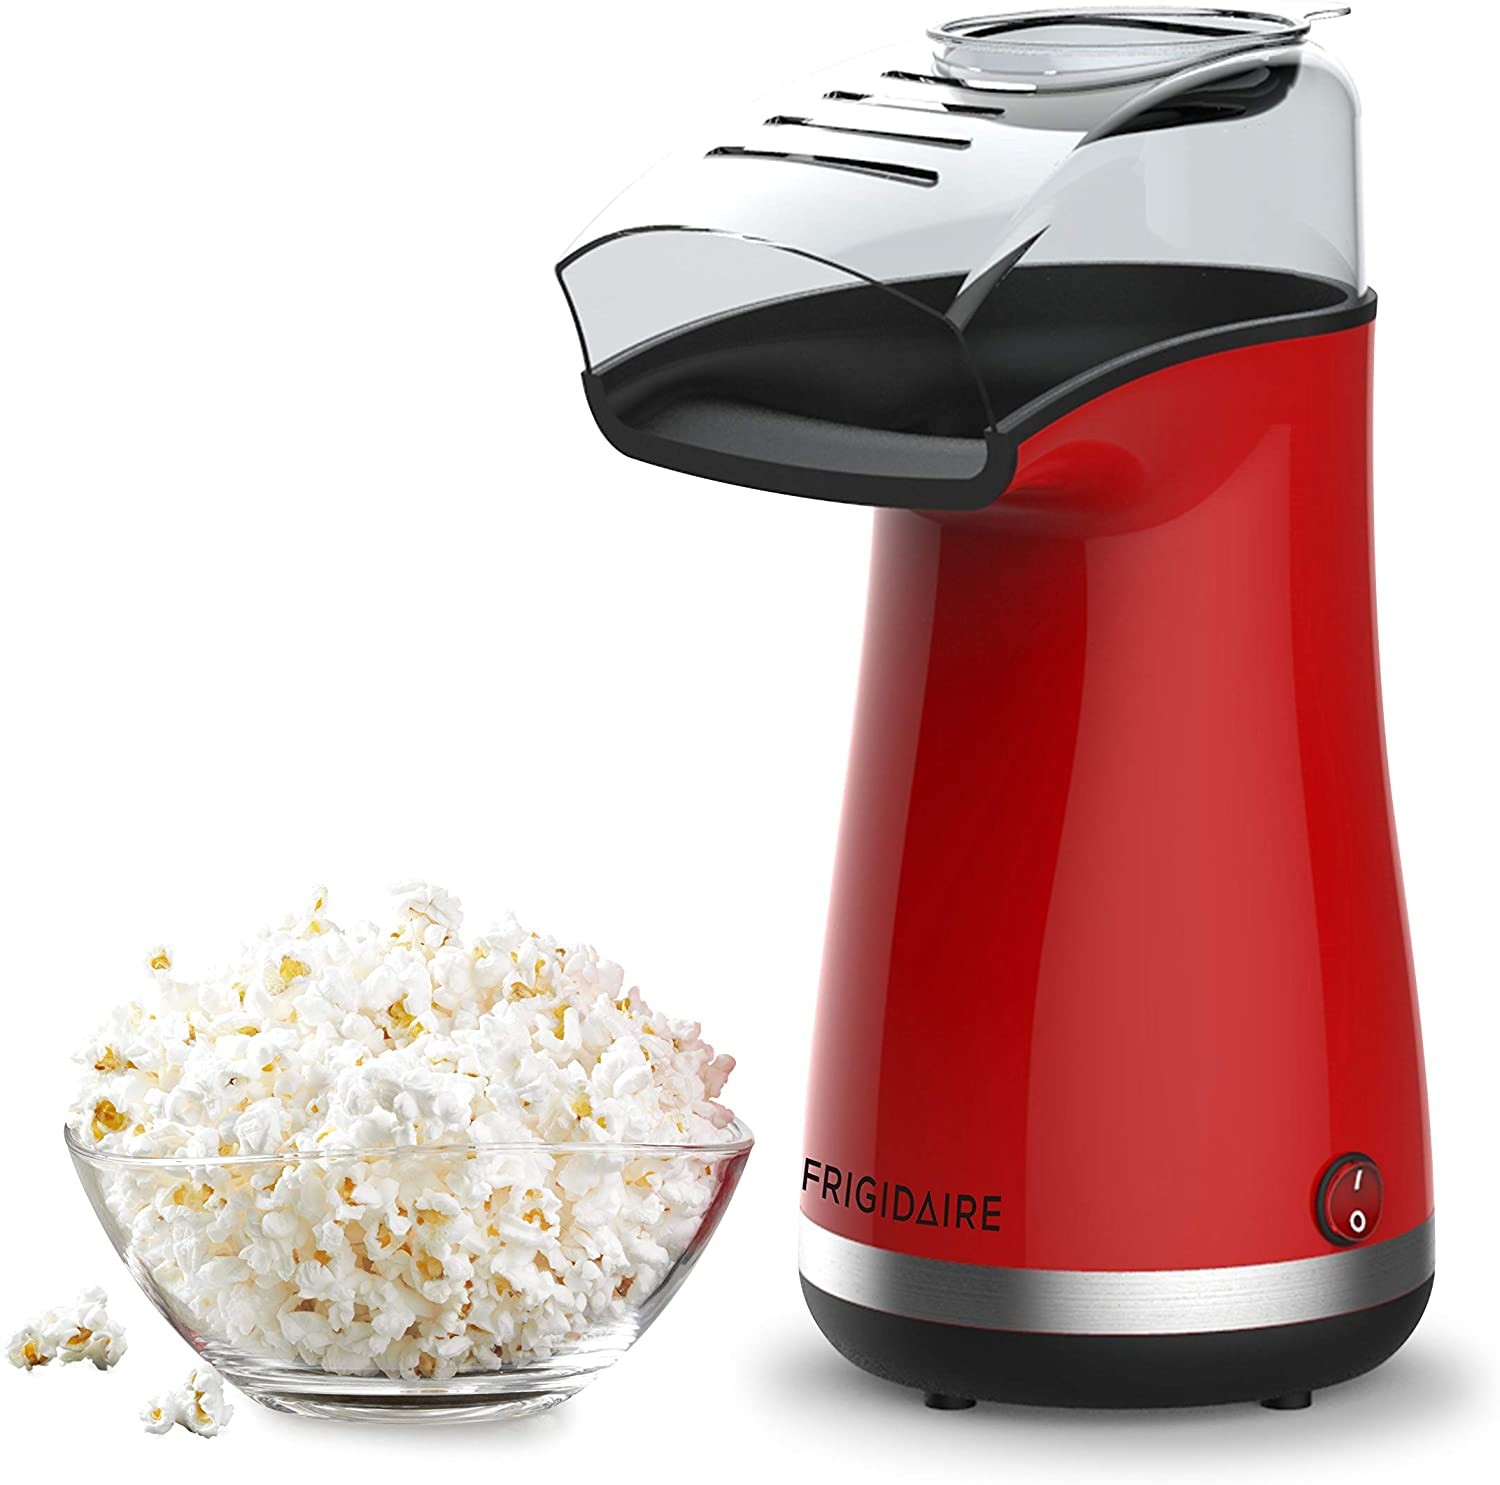 Frigidaire EPM102-RED Deluxe Hot Air Popcorn Popper